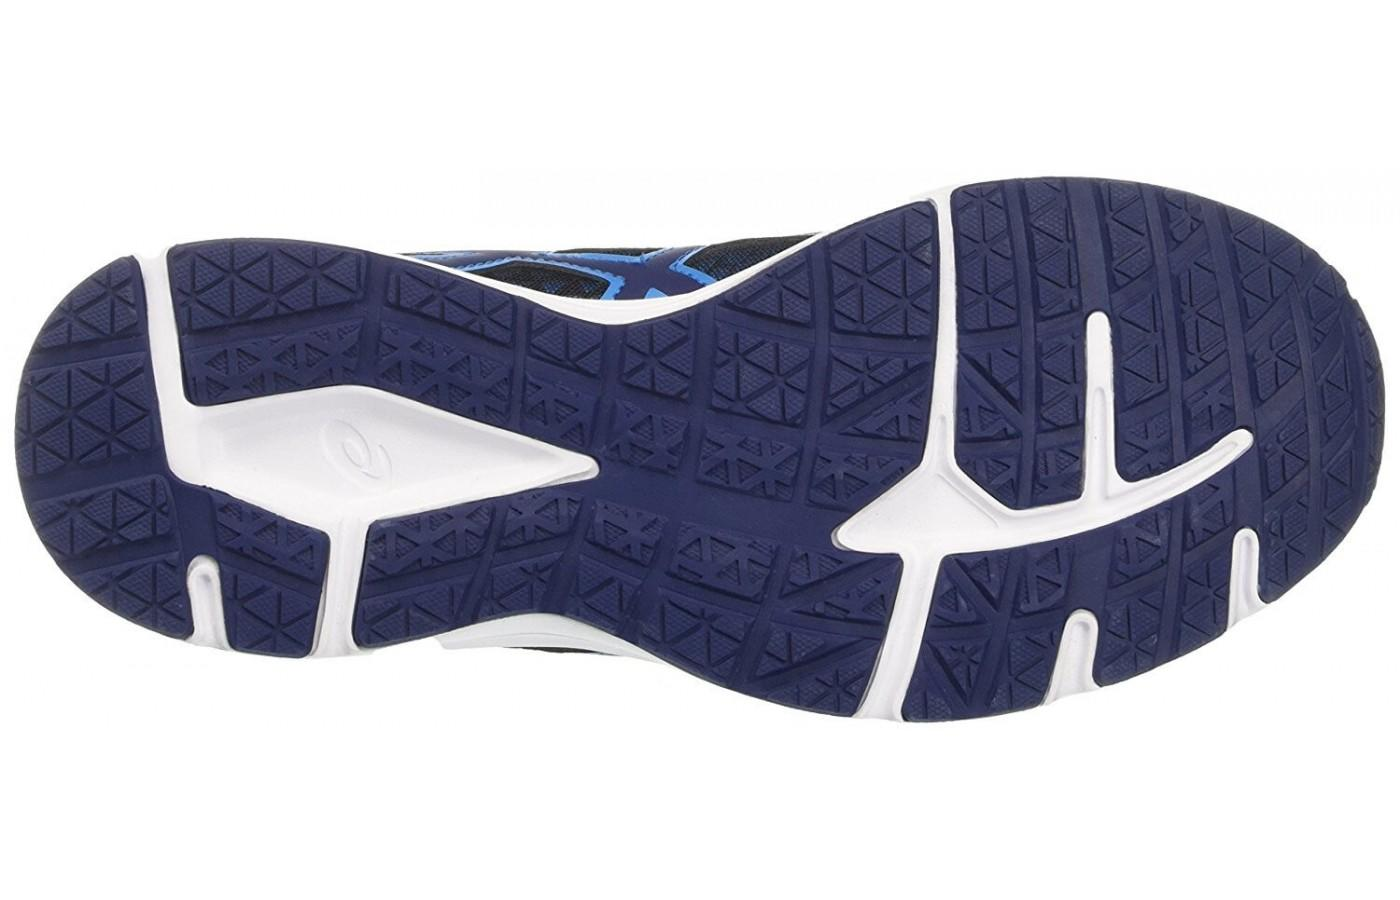 the outsole of the ASICCS Patriot 8 has good traction